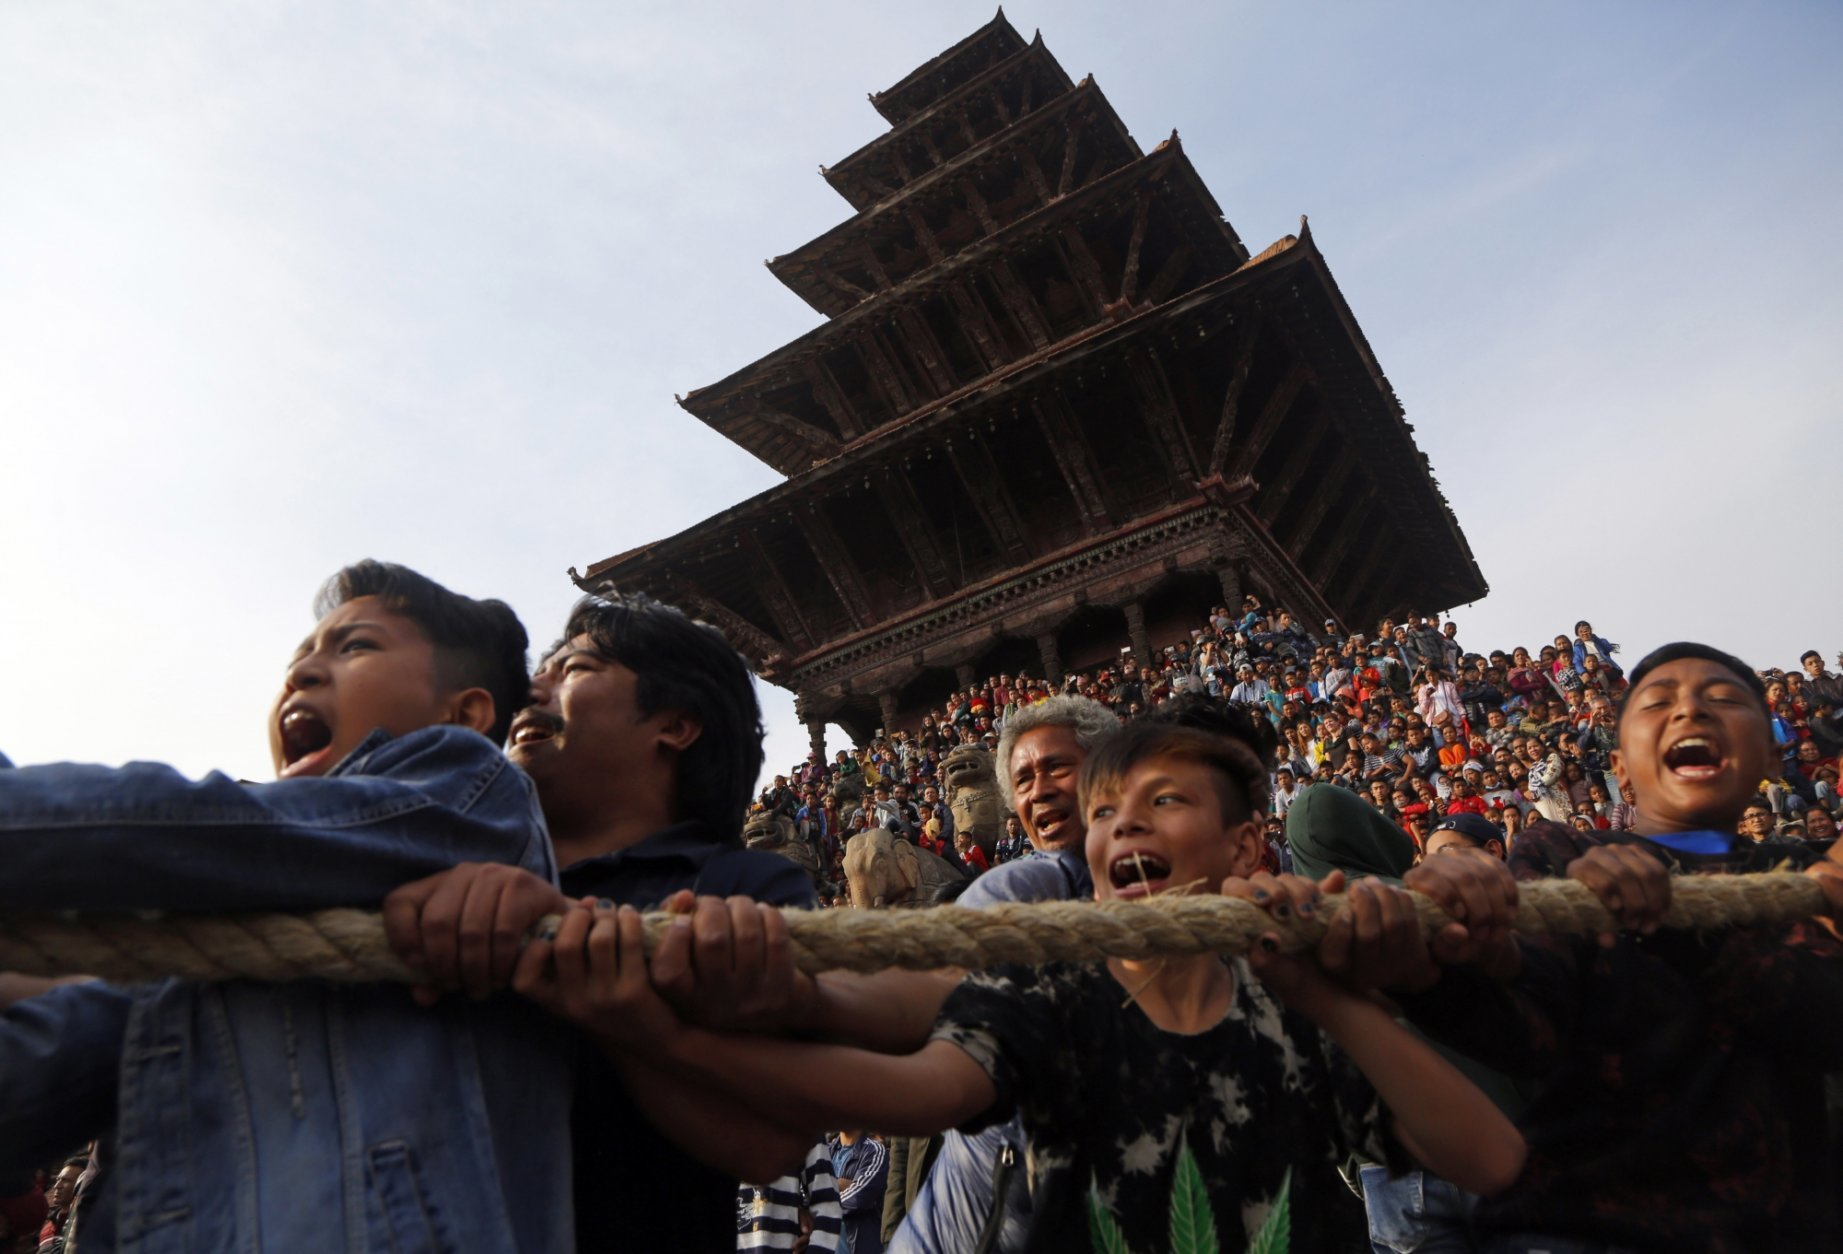 In this April 10, 2018 photo, Nepalese devotees pull ropes tied to the chariot of Hindu god Bhairava during Biska Jatra Festival in Bhaktapur, Nepal, Tuesday, April 10, 2018. During the festival, also regarded as Nepalese New Year, images of Hindu god Bhairava and his female counterpart Bhadrakali are enshrined in two large chariots and pulled to an open square after which rituals and festivities are performed. (AP Photo/Niranjan Shrestha, File)